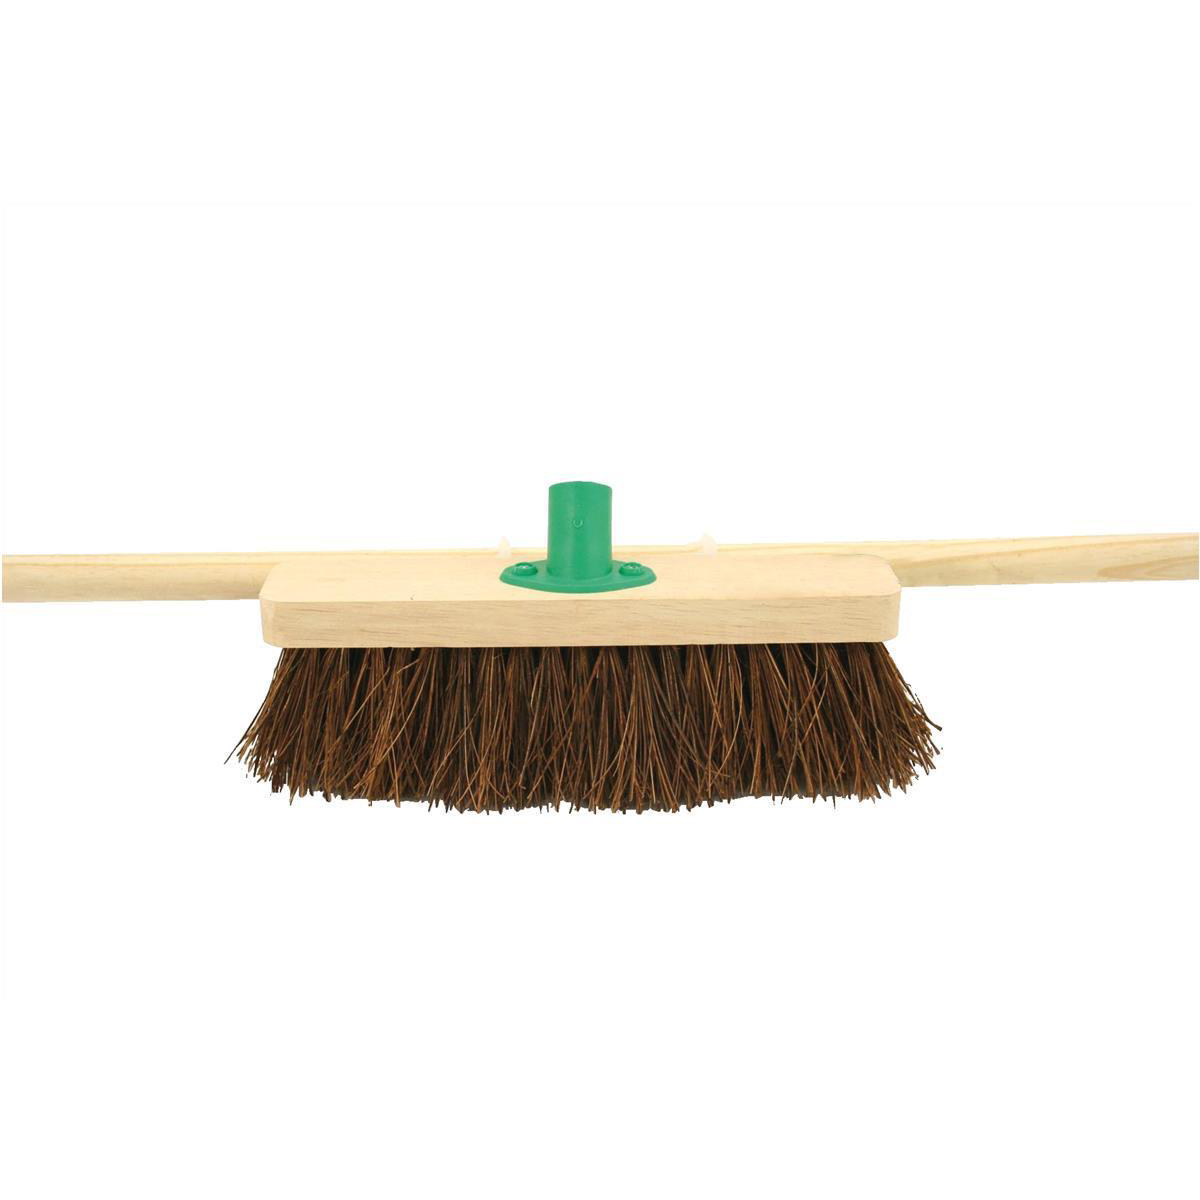 Mops & Buckets Bentley 24inch Stiff Bassine Broom with Handle & Bracket Ref SPC/H12BKT/C4